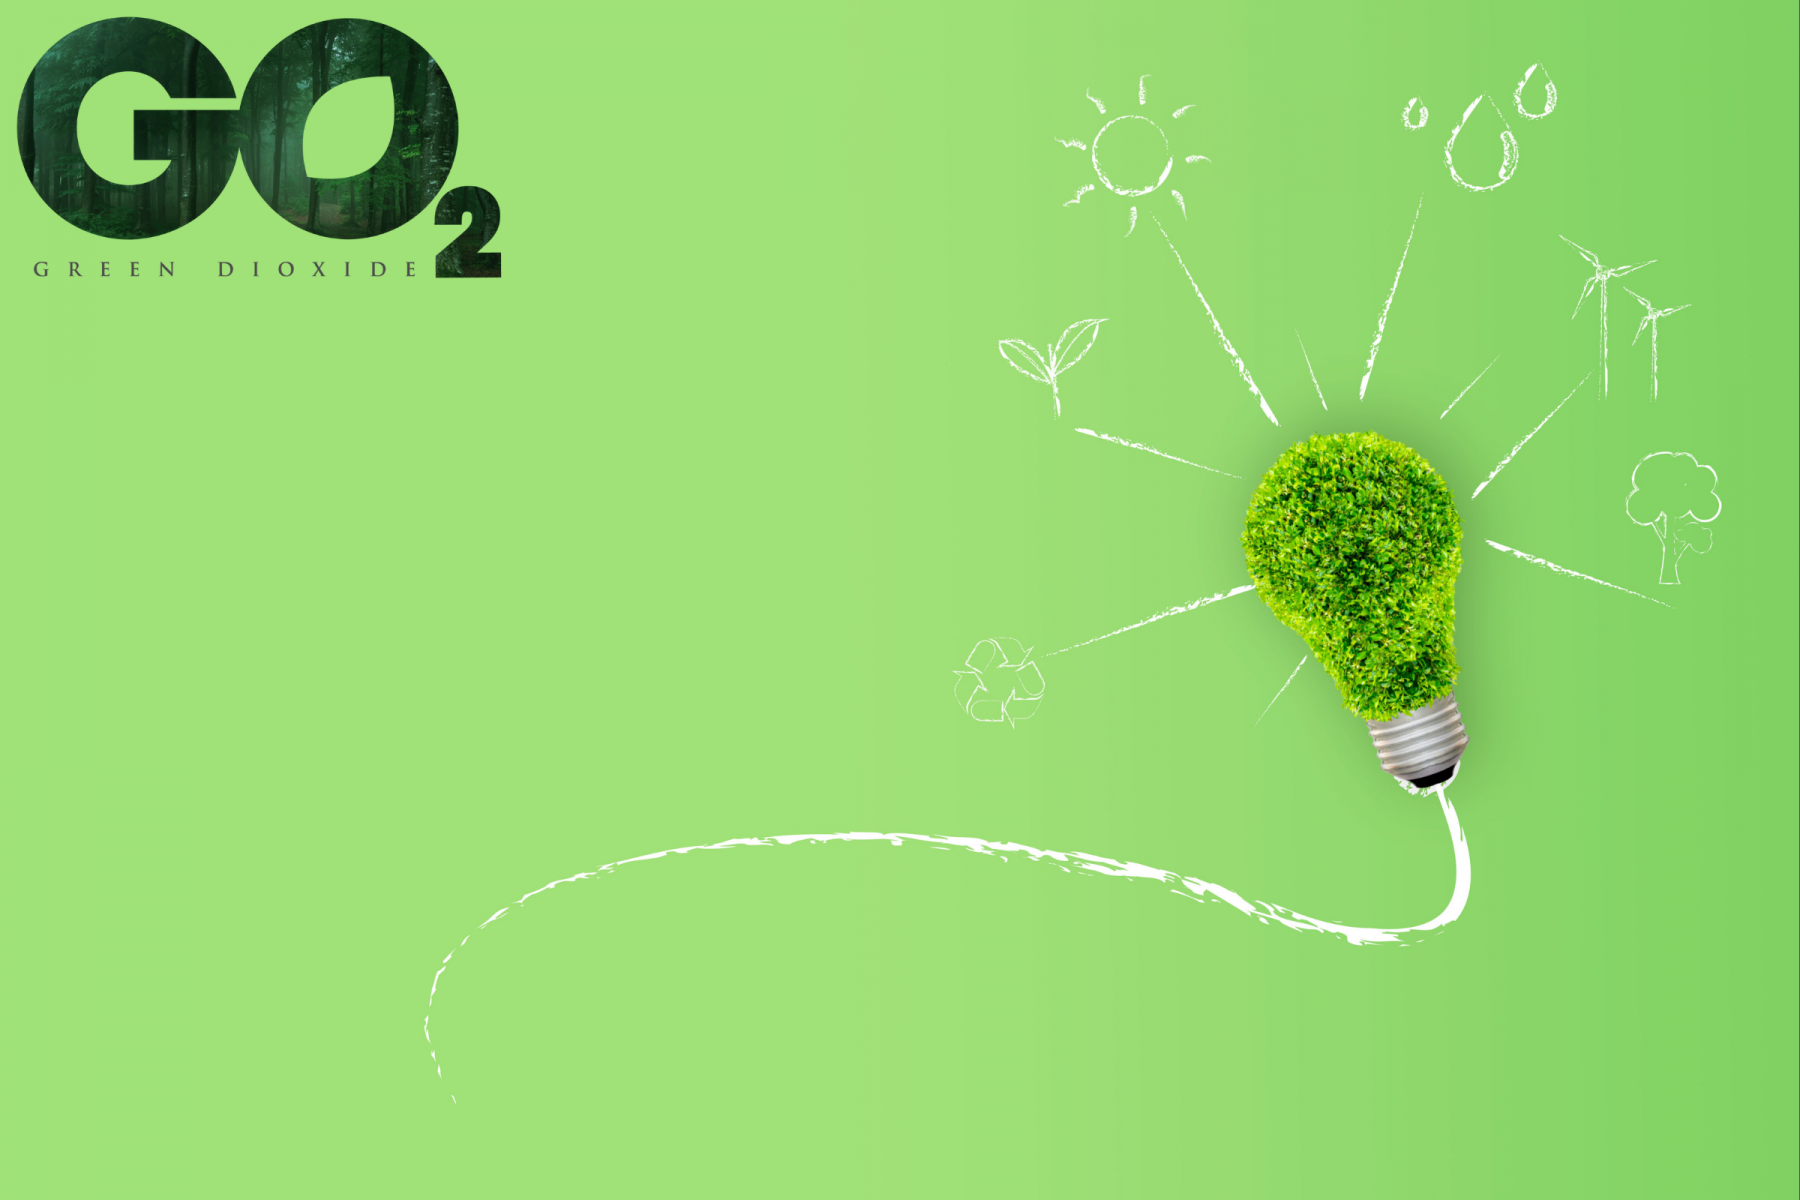 What is GO2, or Green Dioxide?